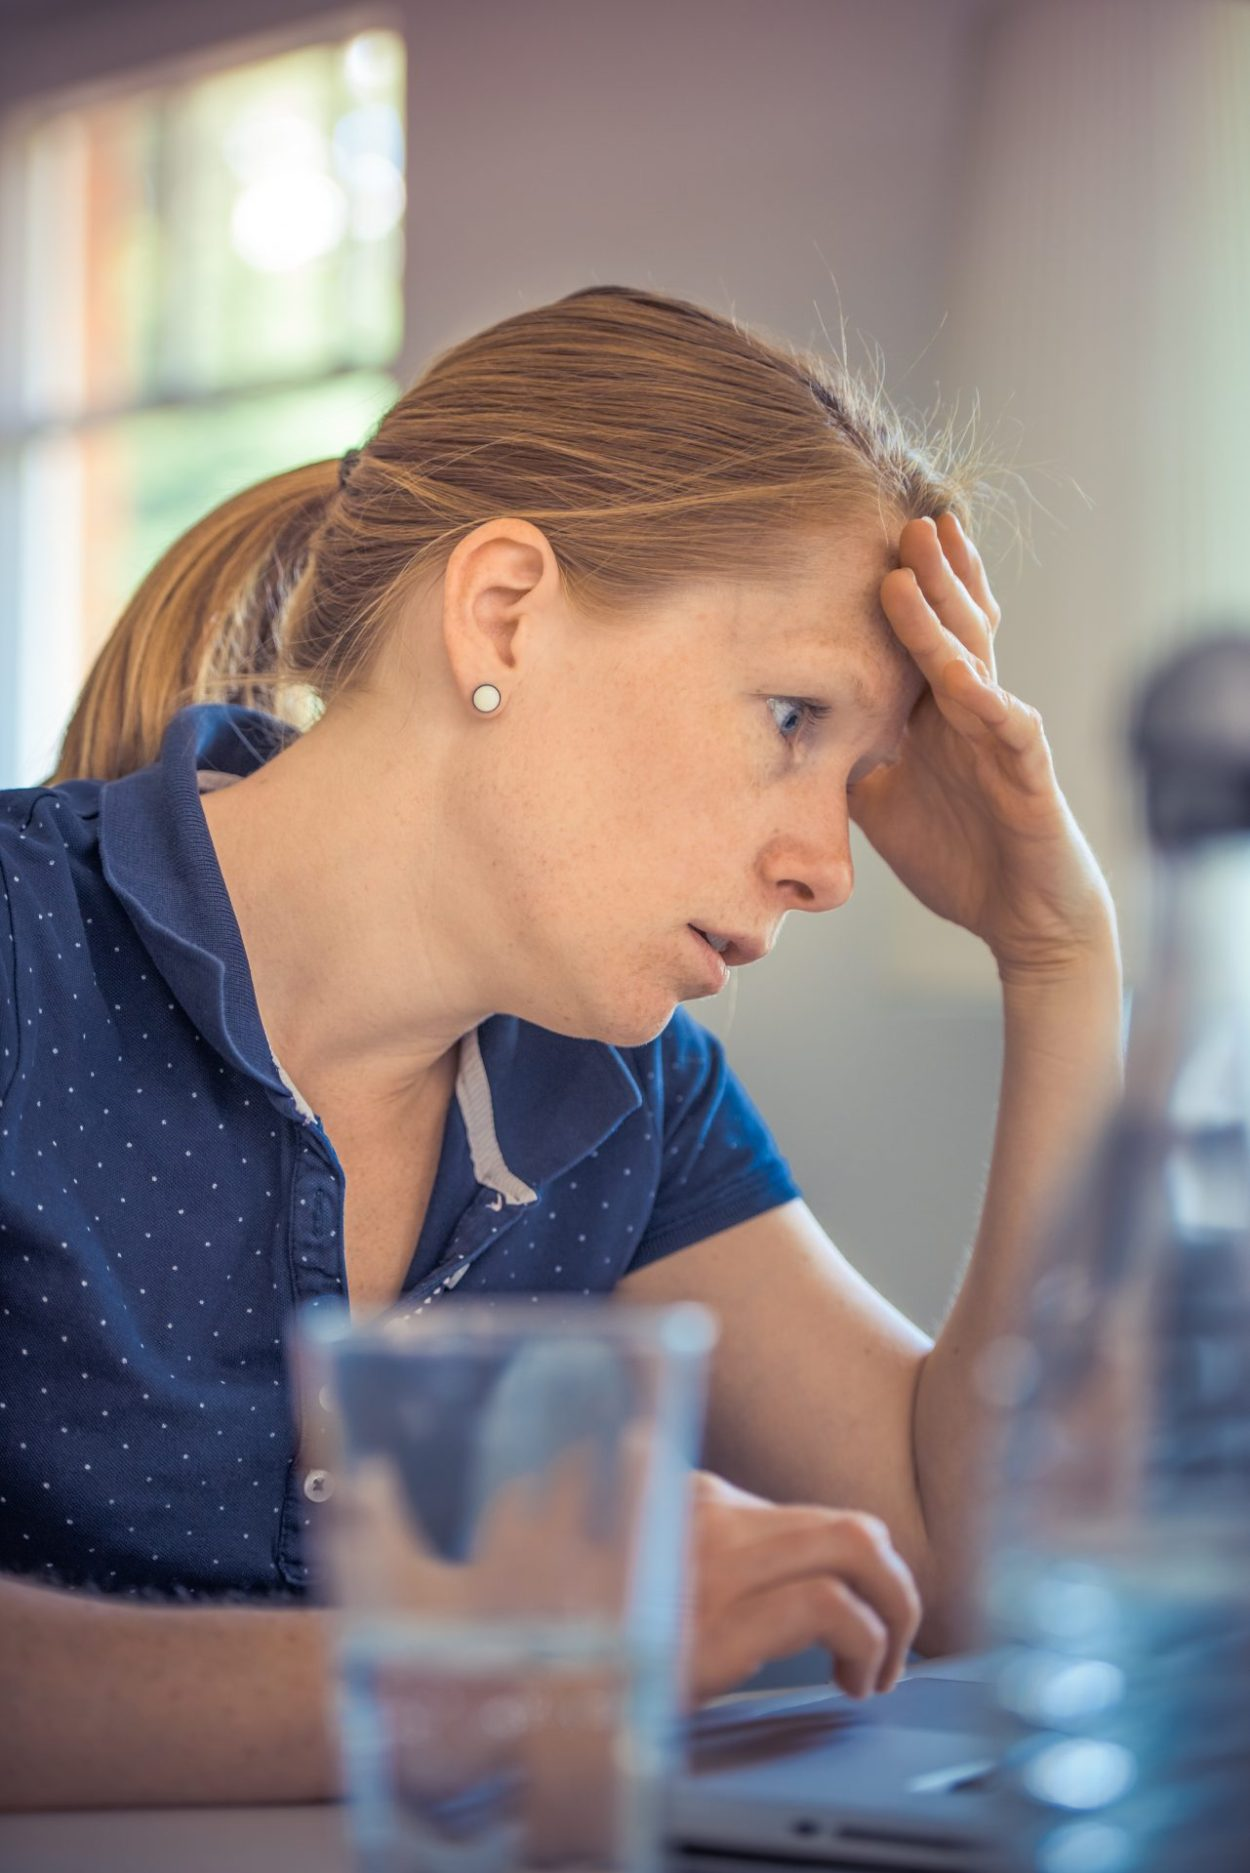 Woman with hand on forehead in frustration from imposter syndrome. She's wearing a blue polo with white polka dots.